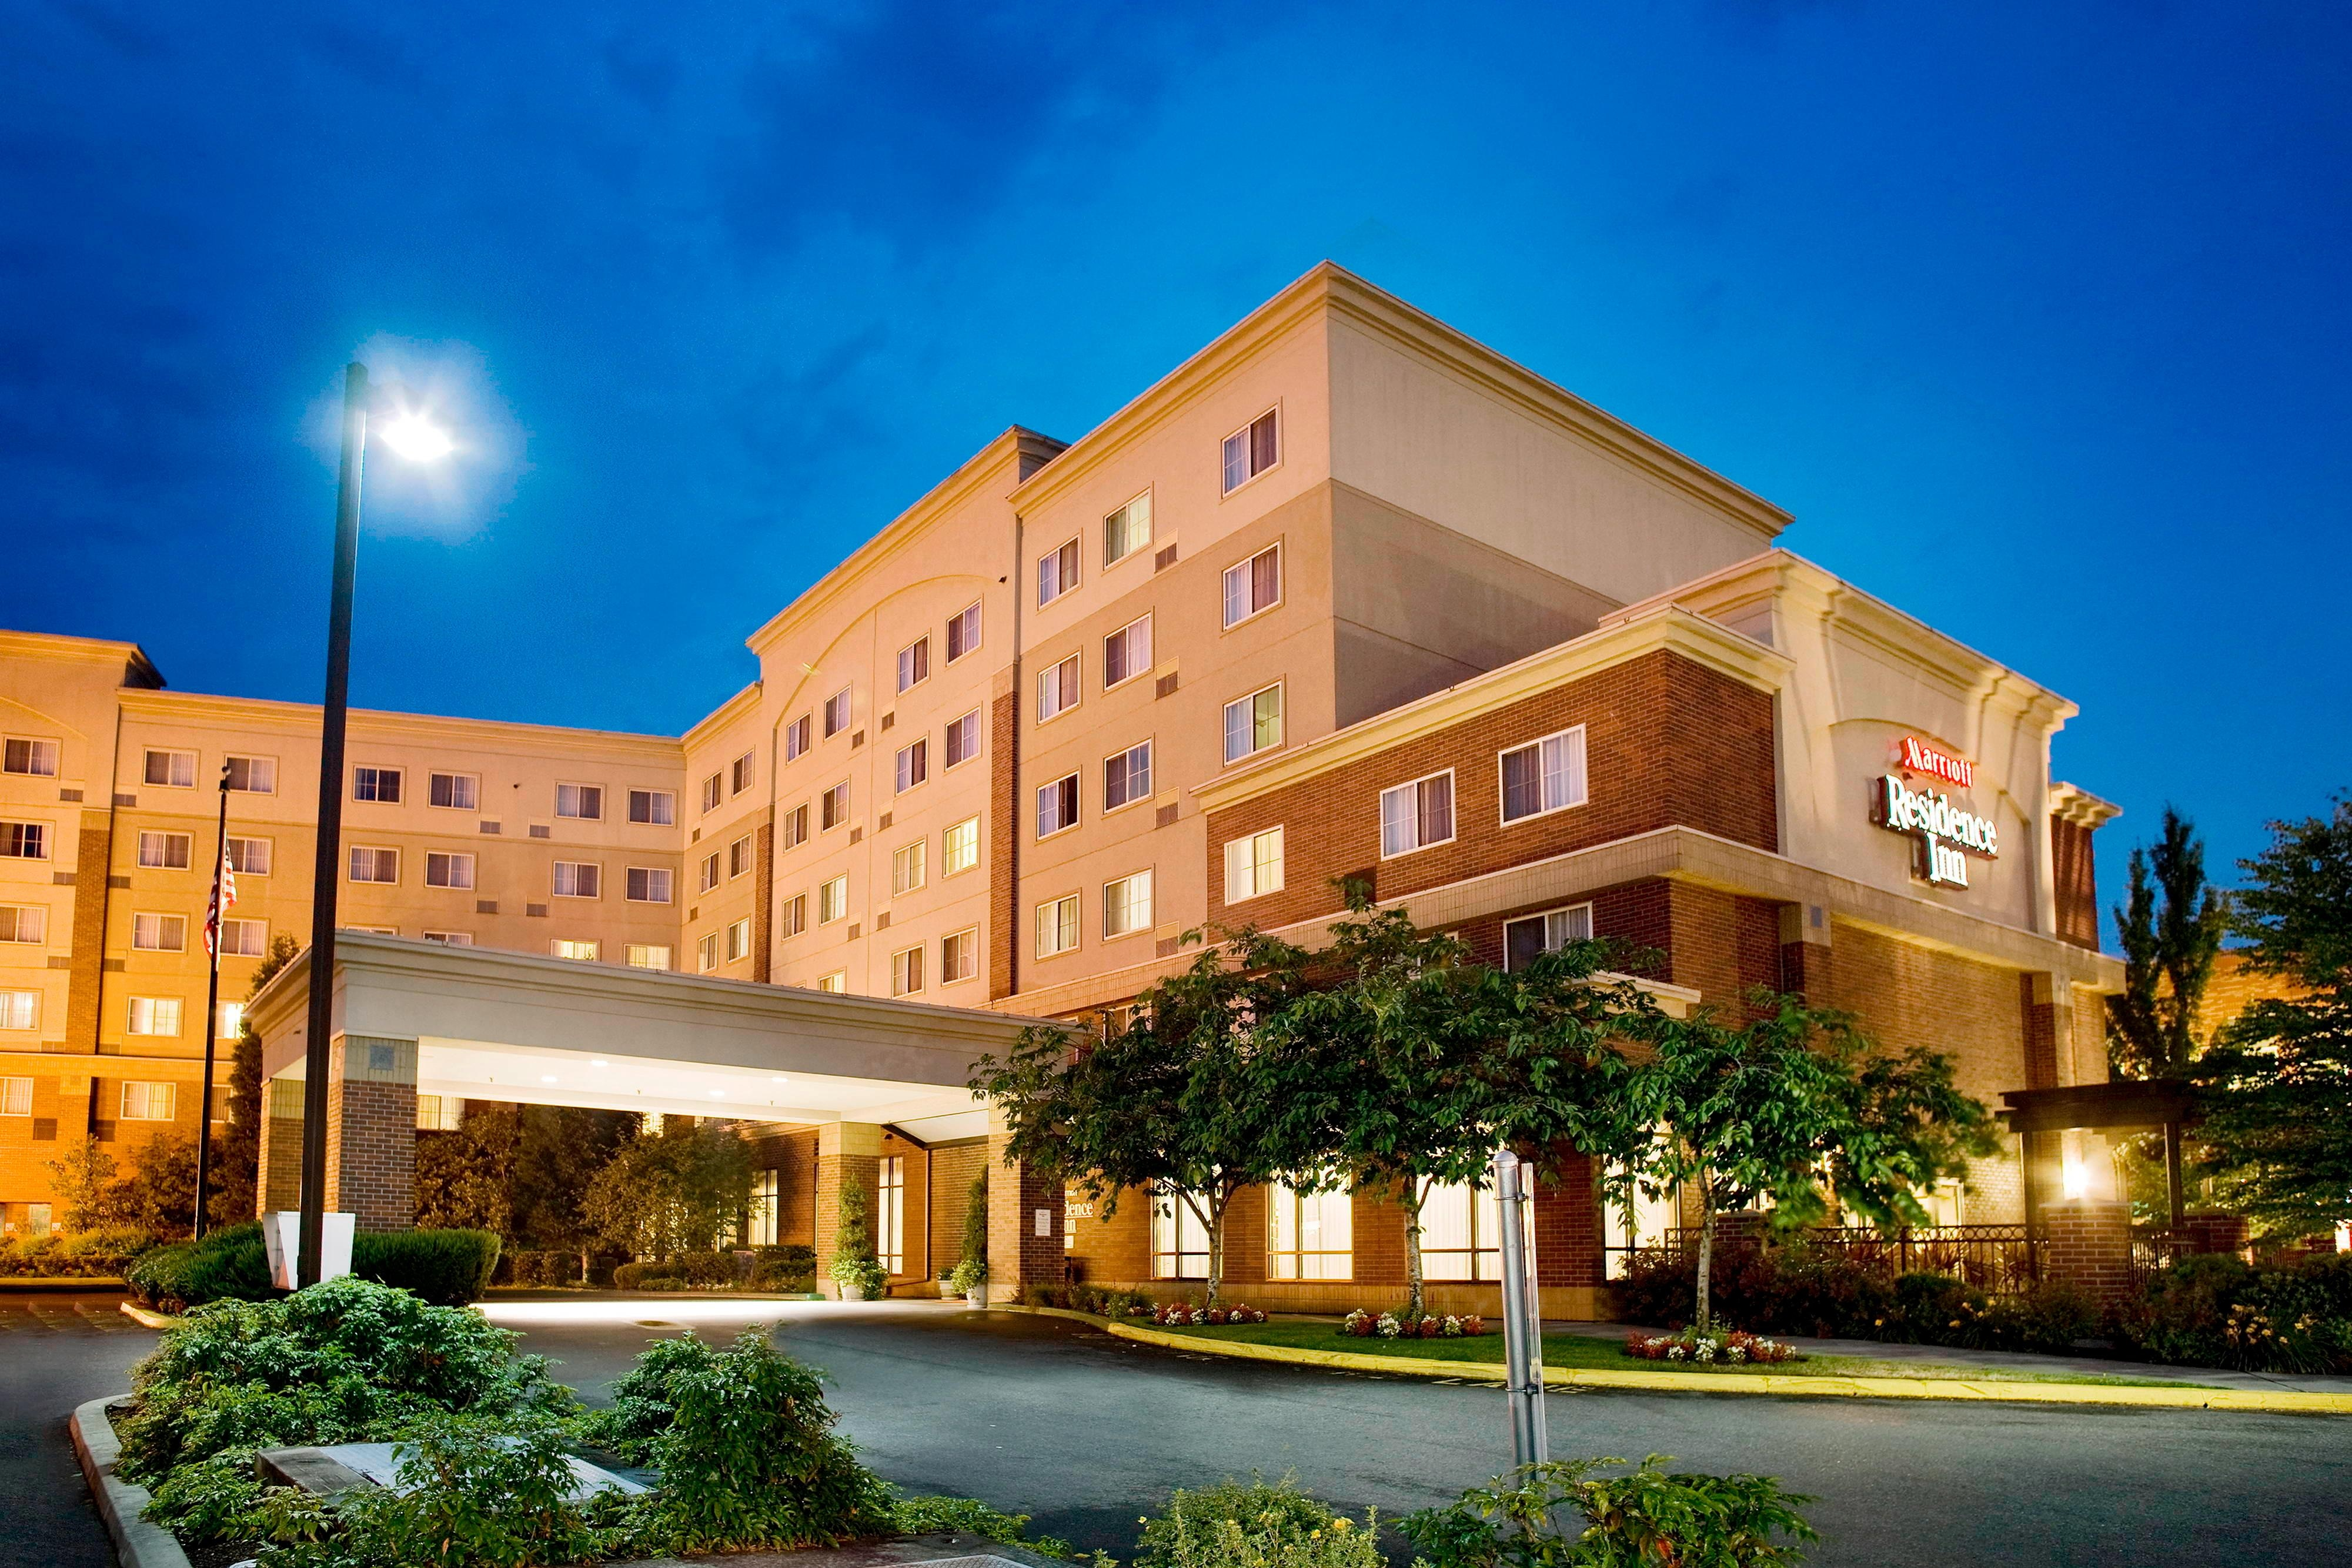 Residence Inn Redmond Night Exterior